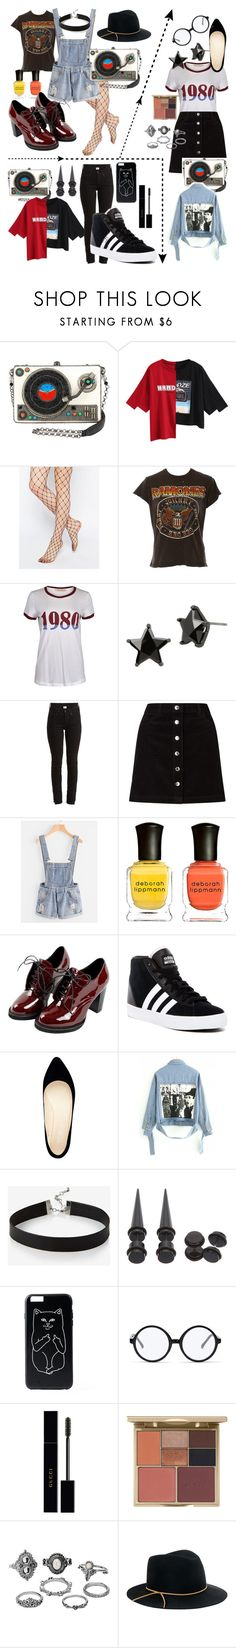 """""""Concert Looks"""" by a-m-stall ❤ liked on Polyvore featuring Gipsy, MadeWorn, Betsey Johnson, Vetements, Miss Selfridge, Deborah Lippmann, adidas, Nine West, Express and Hot Topic"""